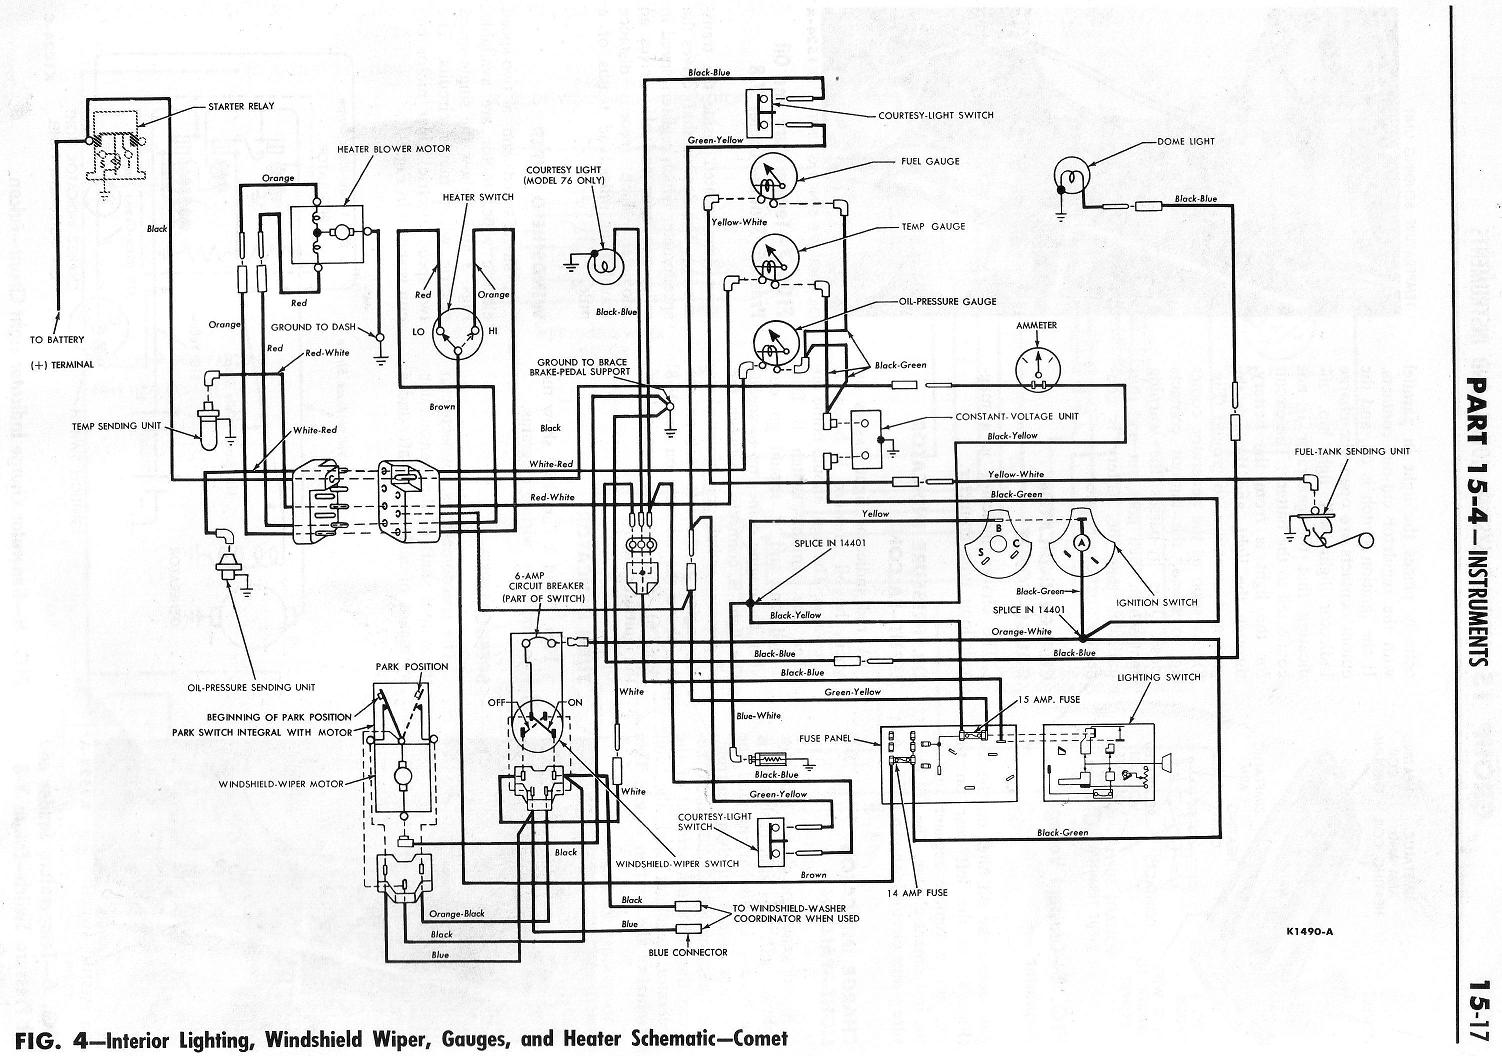 Cool 1965 Falcon Fuse Box Circuit Diagram Template Wiring Cloud Mousmenurrecoveryedborg